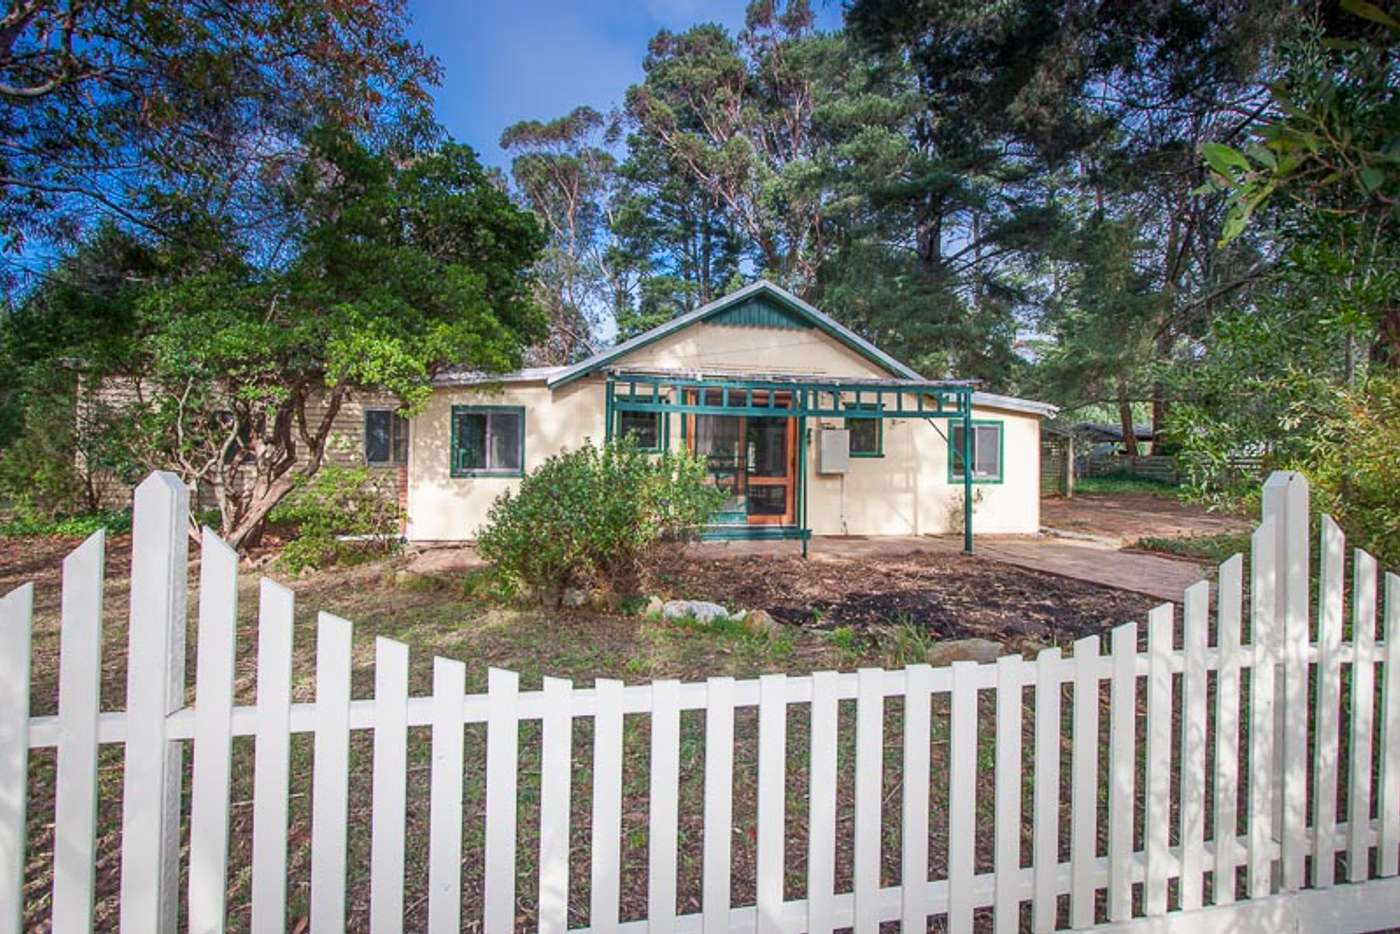 Main view of Homely house listing, 7 McBean Avenue, Macedon VIC 3440